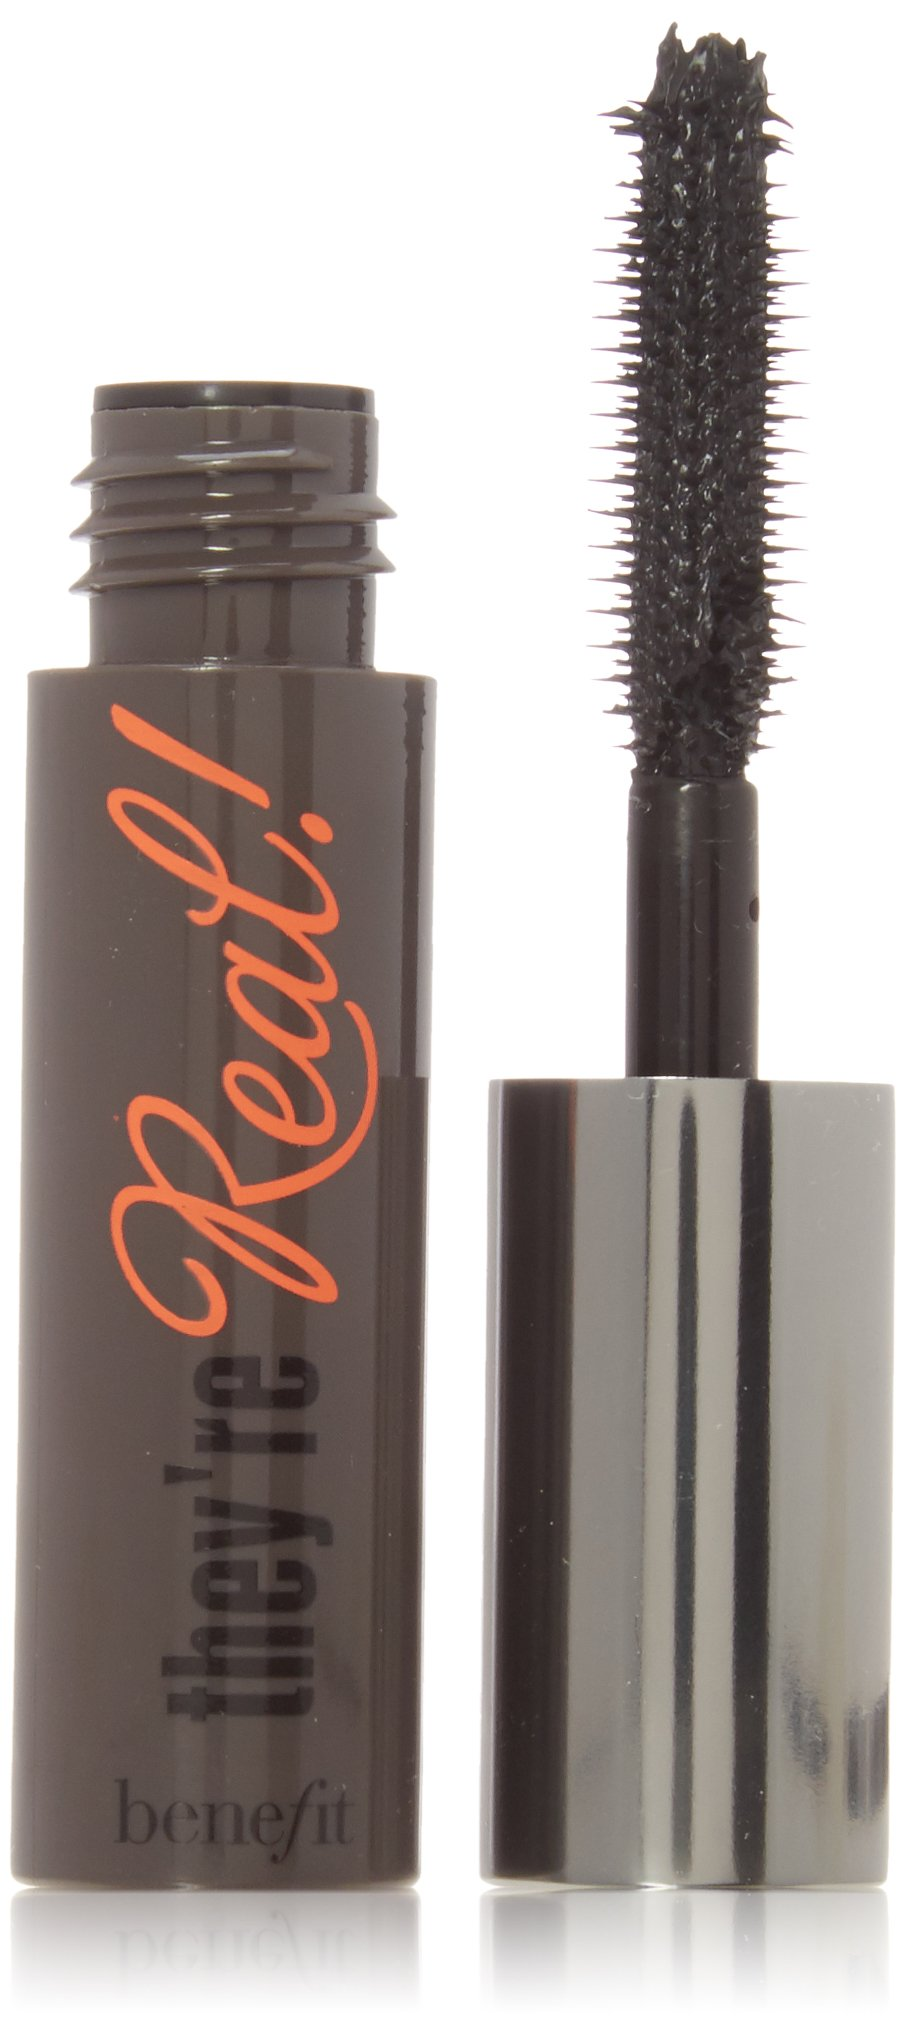 73e6c5cad7e Amazon.com : Benefit They're Real Mascara, Jet Black, Deluxe Travel Size,  0.1oz/3.0g : Beauty